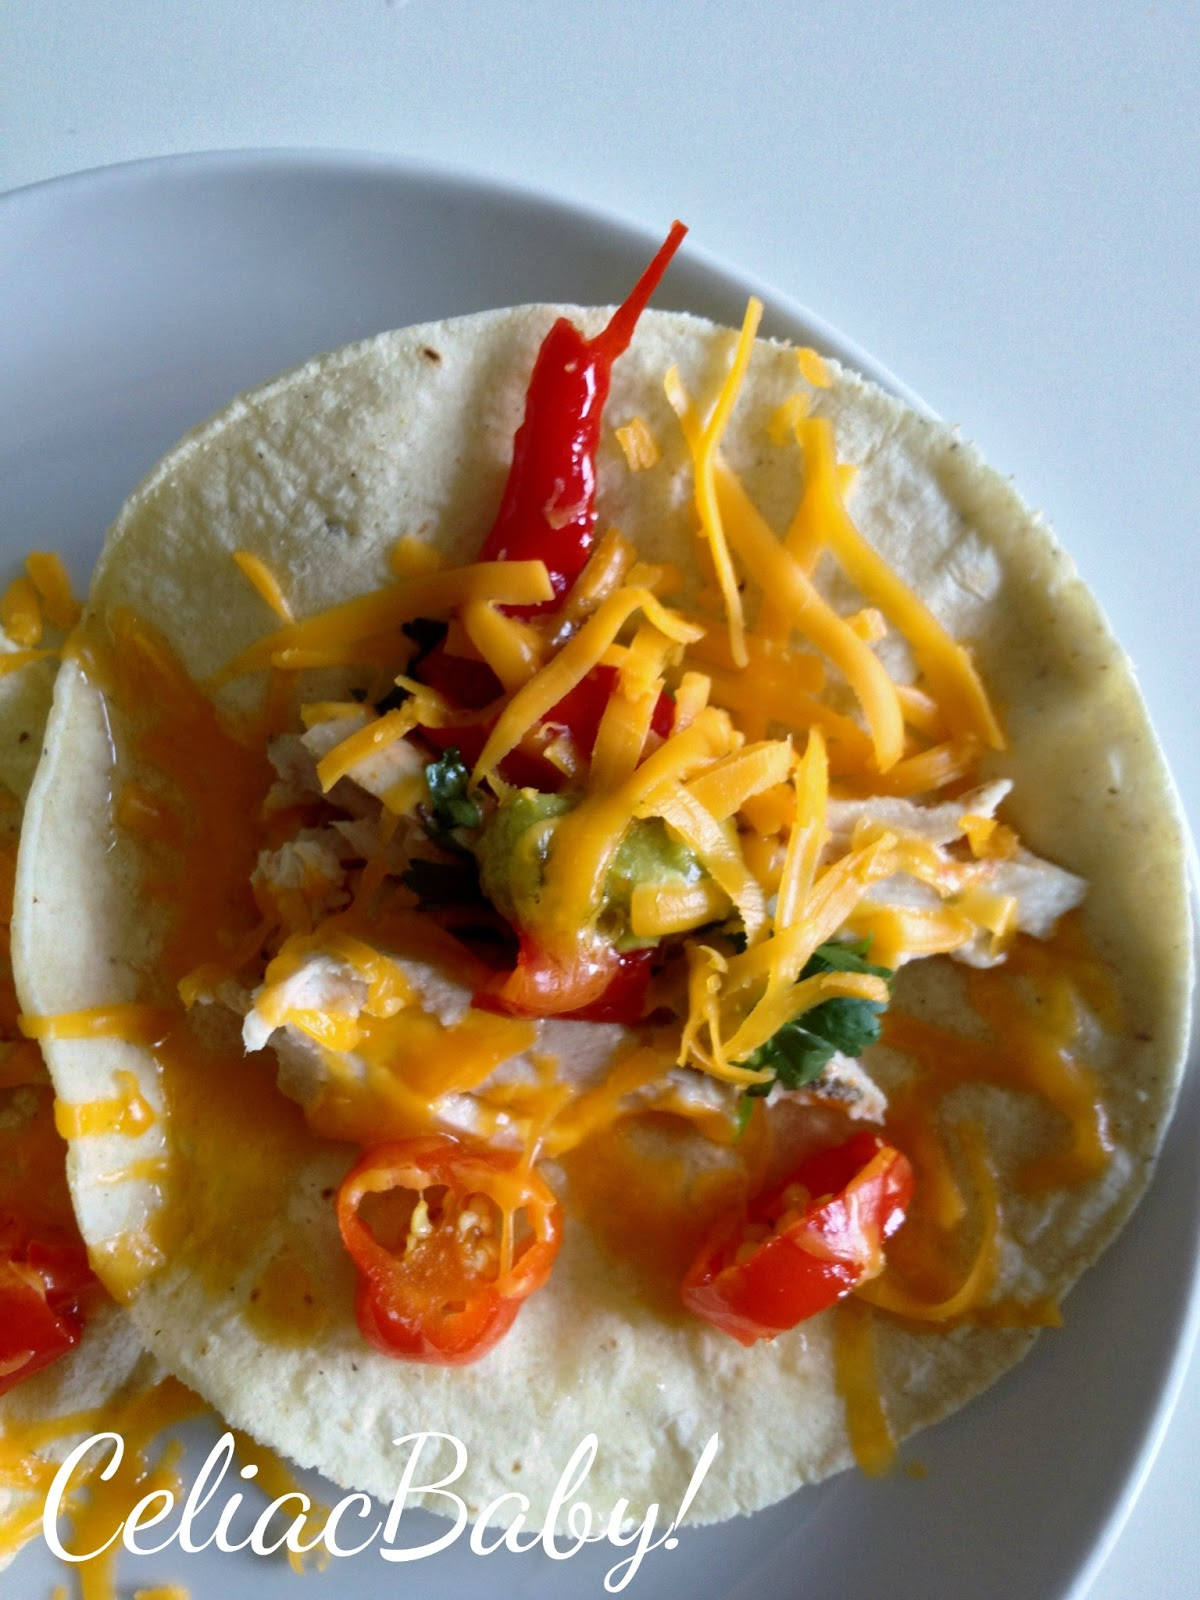 Celiac Baby Homemade Soft Corn Tortillas In Three Easy Steps